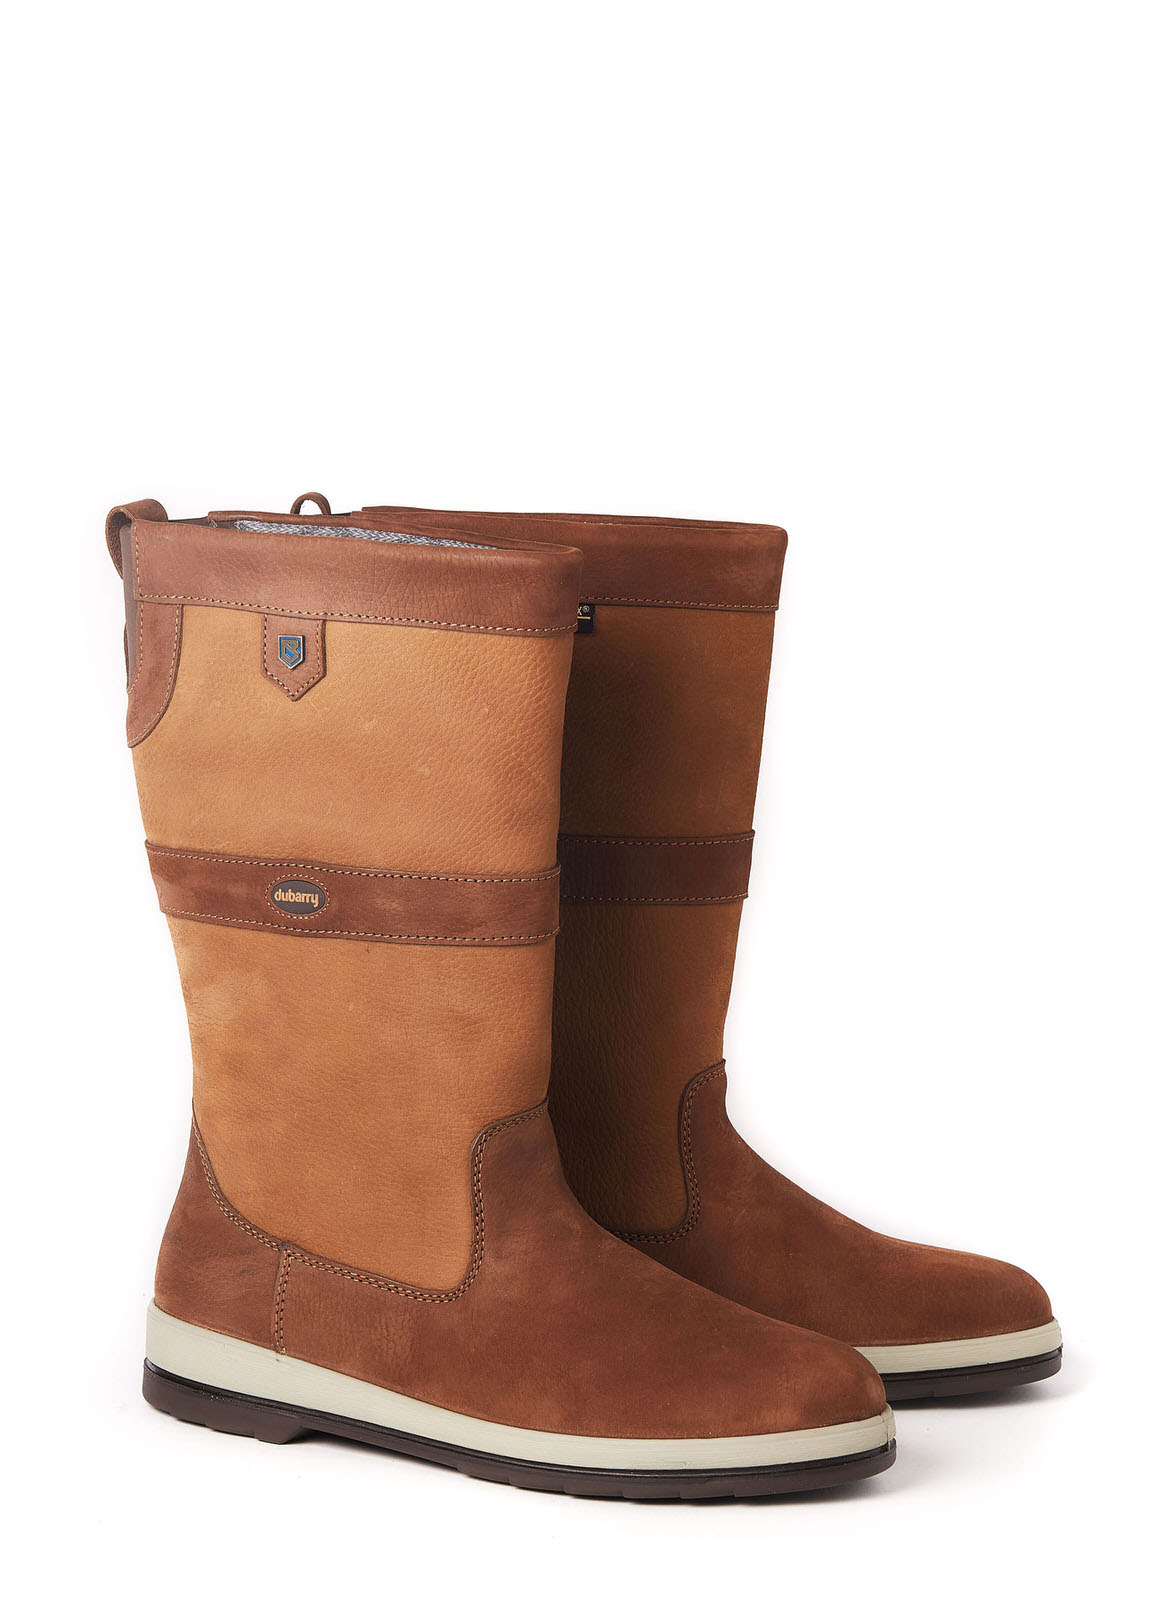 Ultima ExtraFit™ Sailing Boot - Brown